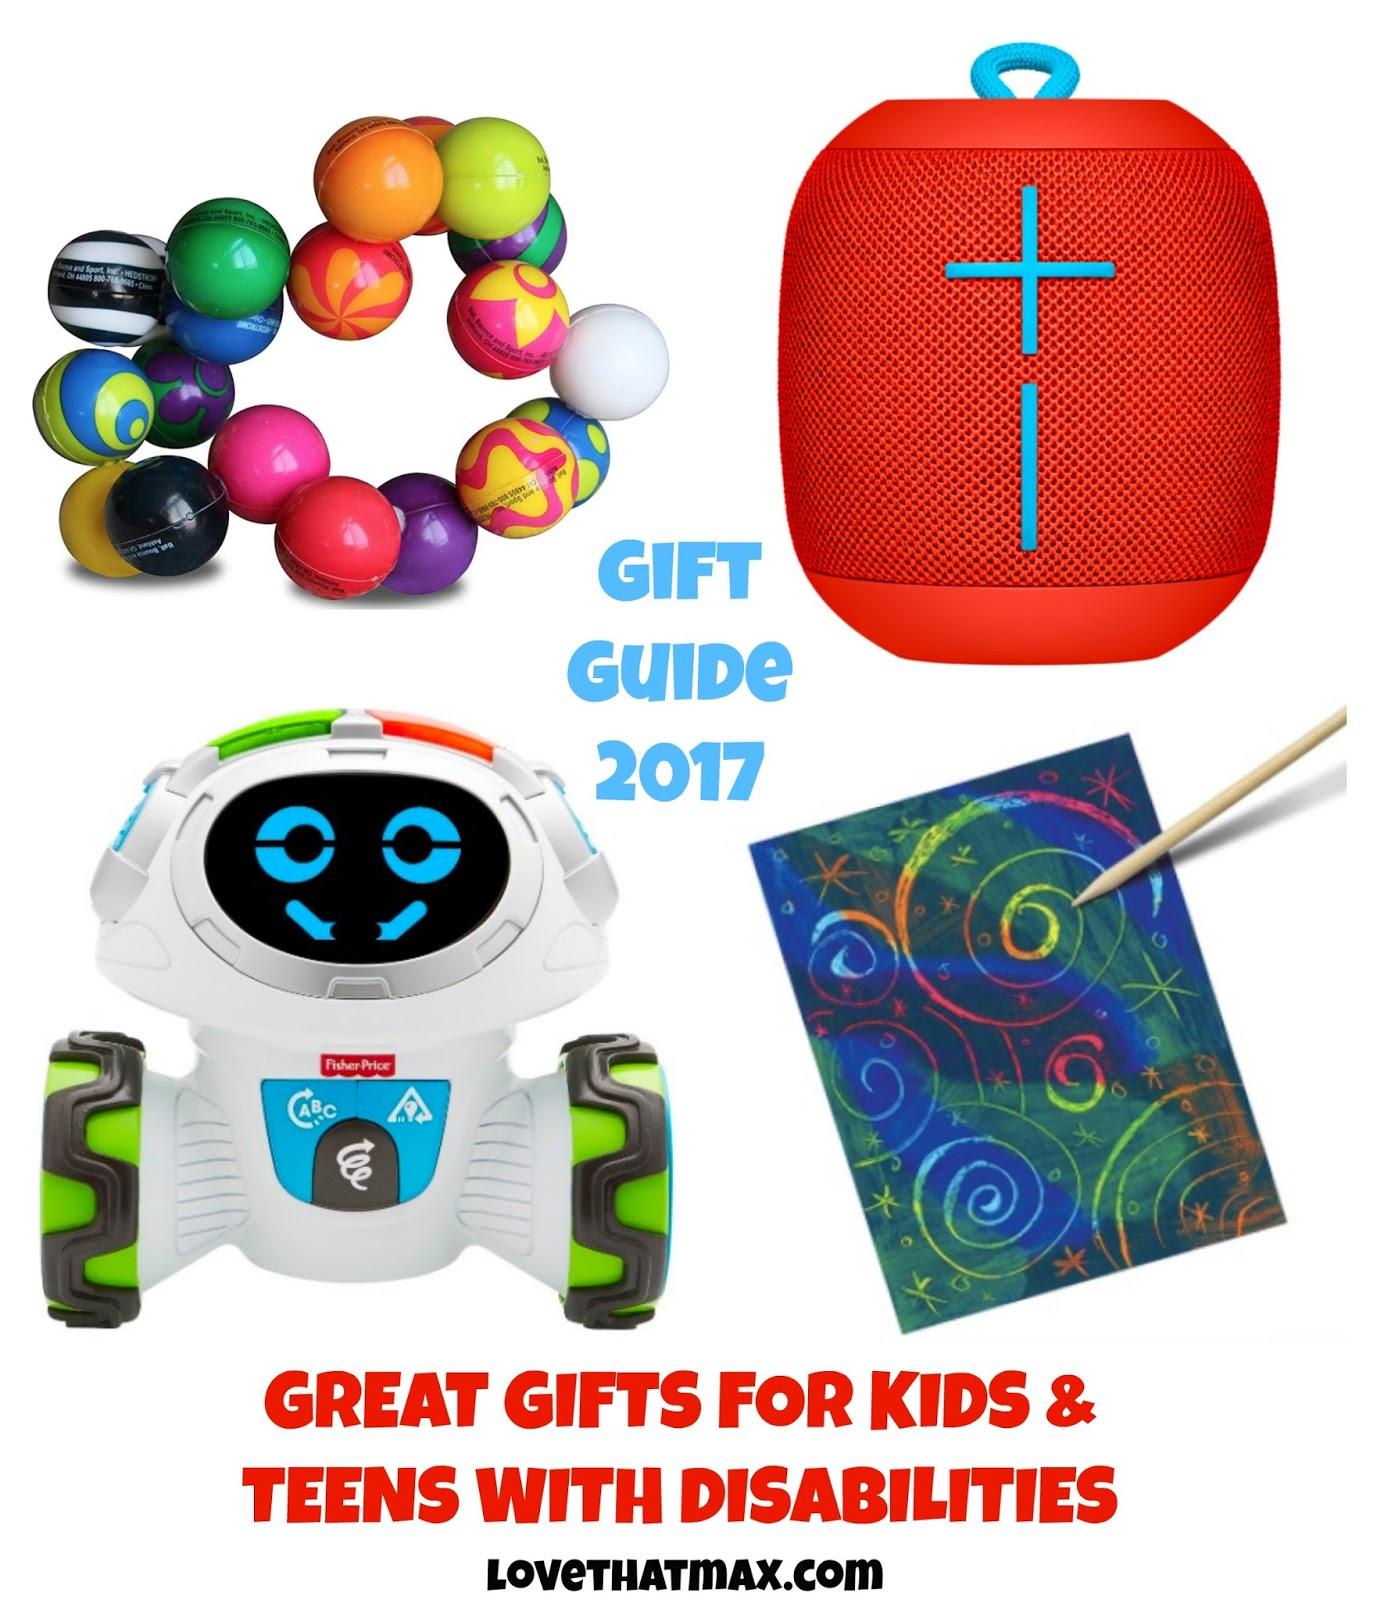 Love That Max Great Gifts For Kids And Teens With Disabilities Holiday Guide 2017